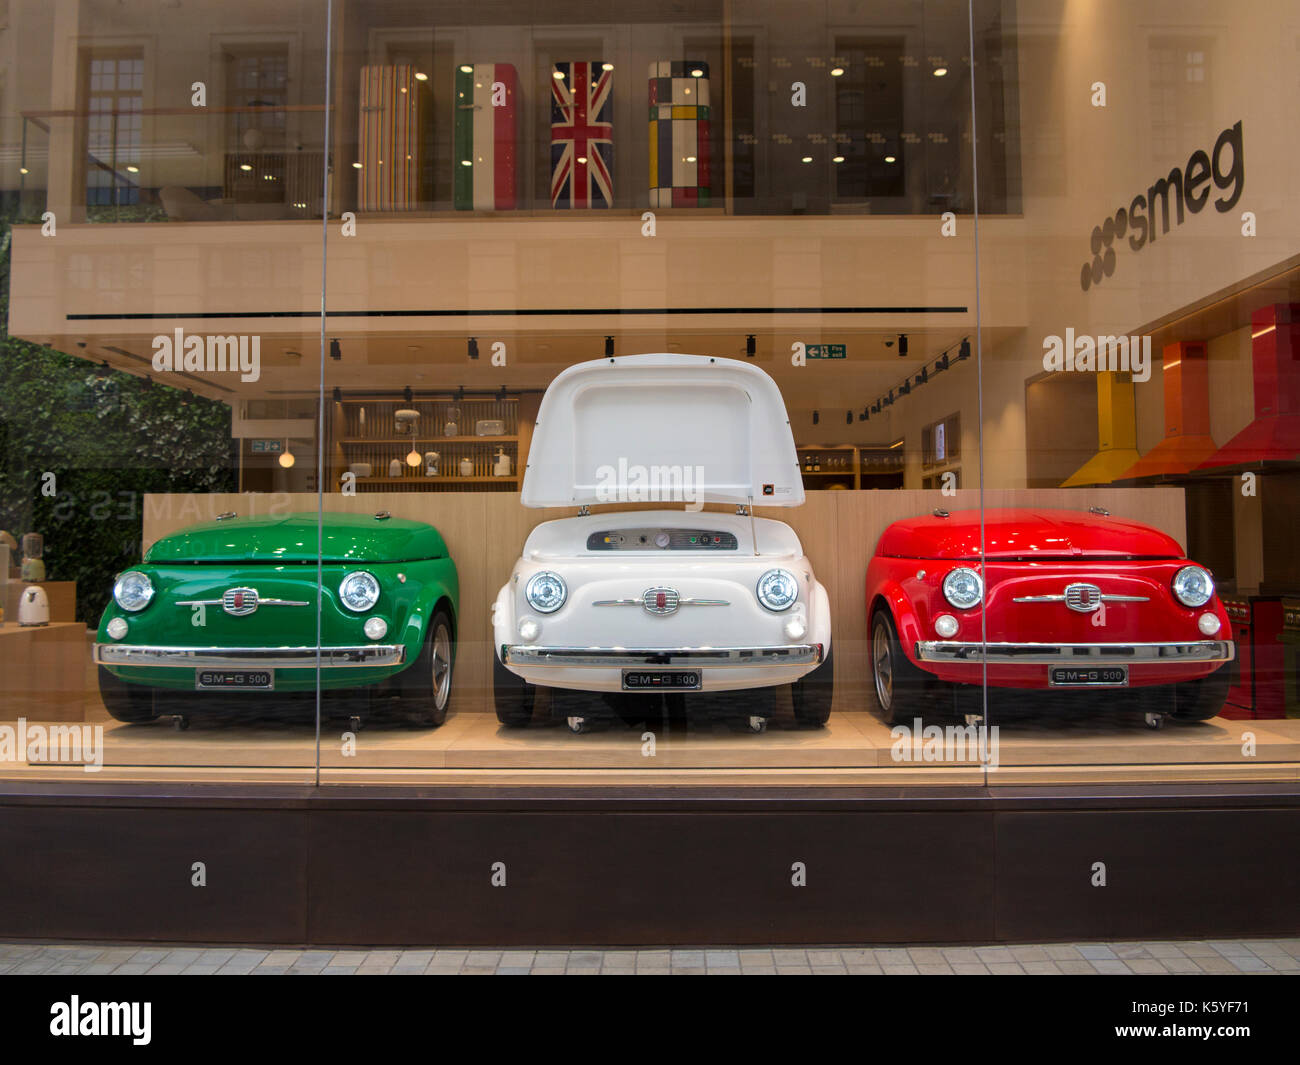 Fiat Fridges In A Display Showroom In London Stock Photo - Fiat dealers in london